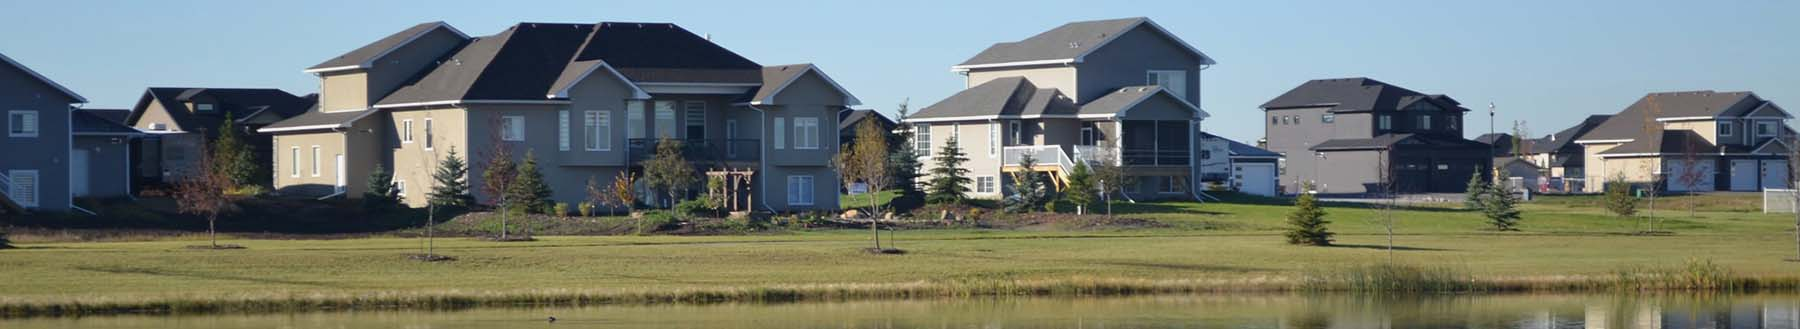 Carriage Lake subdivision